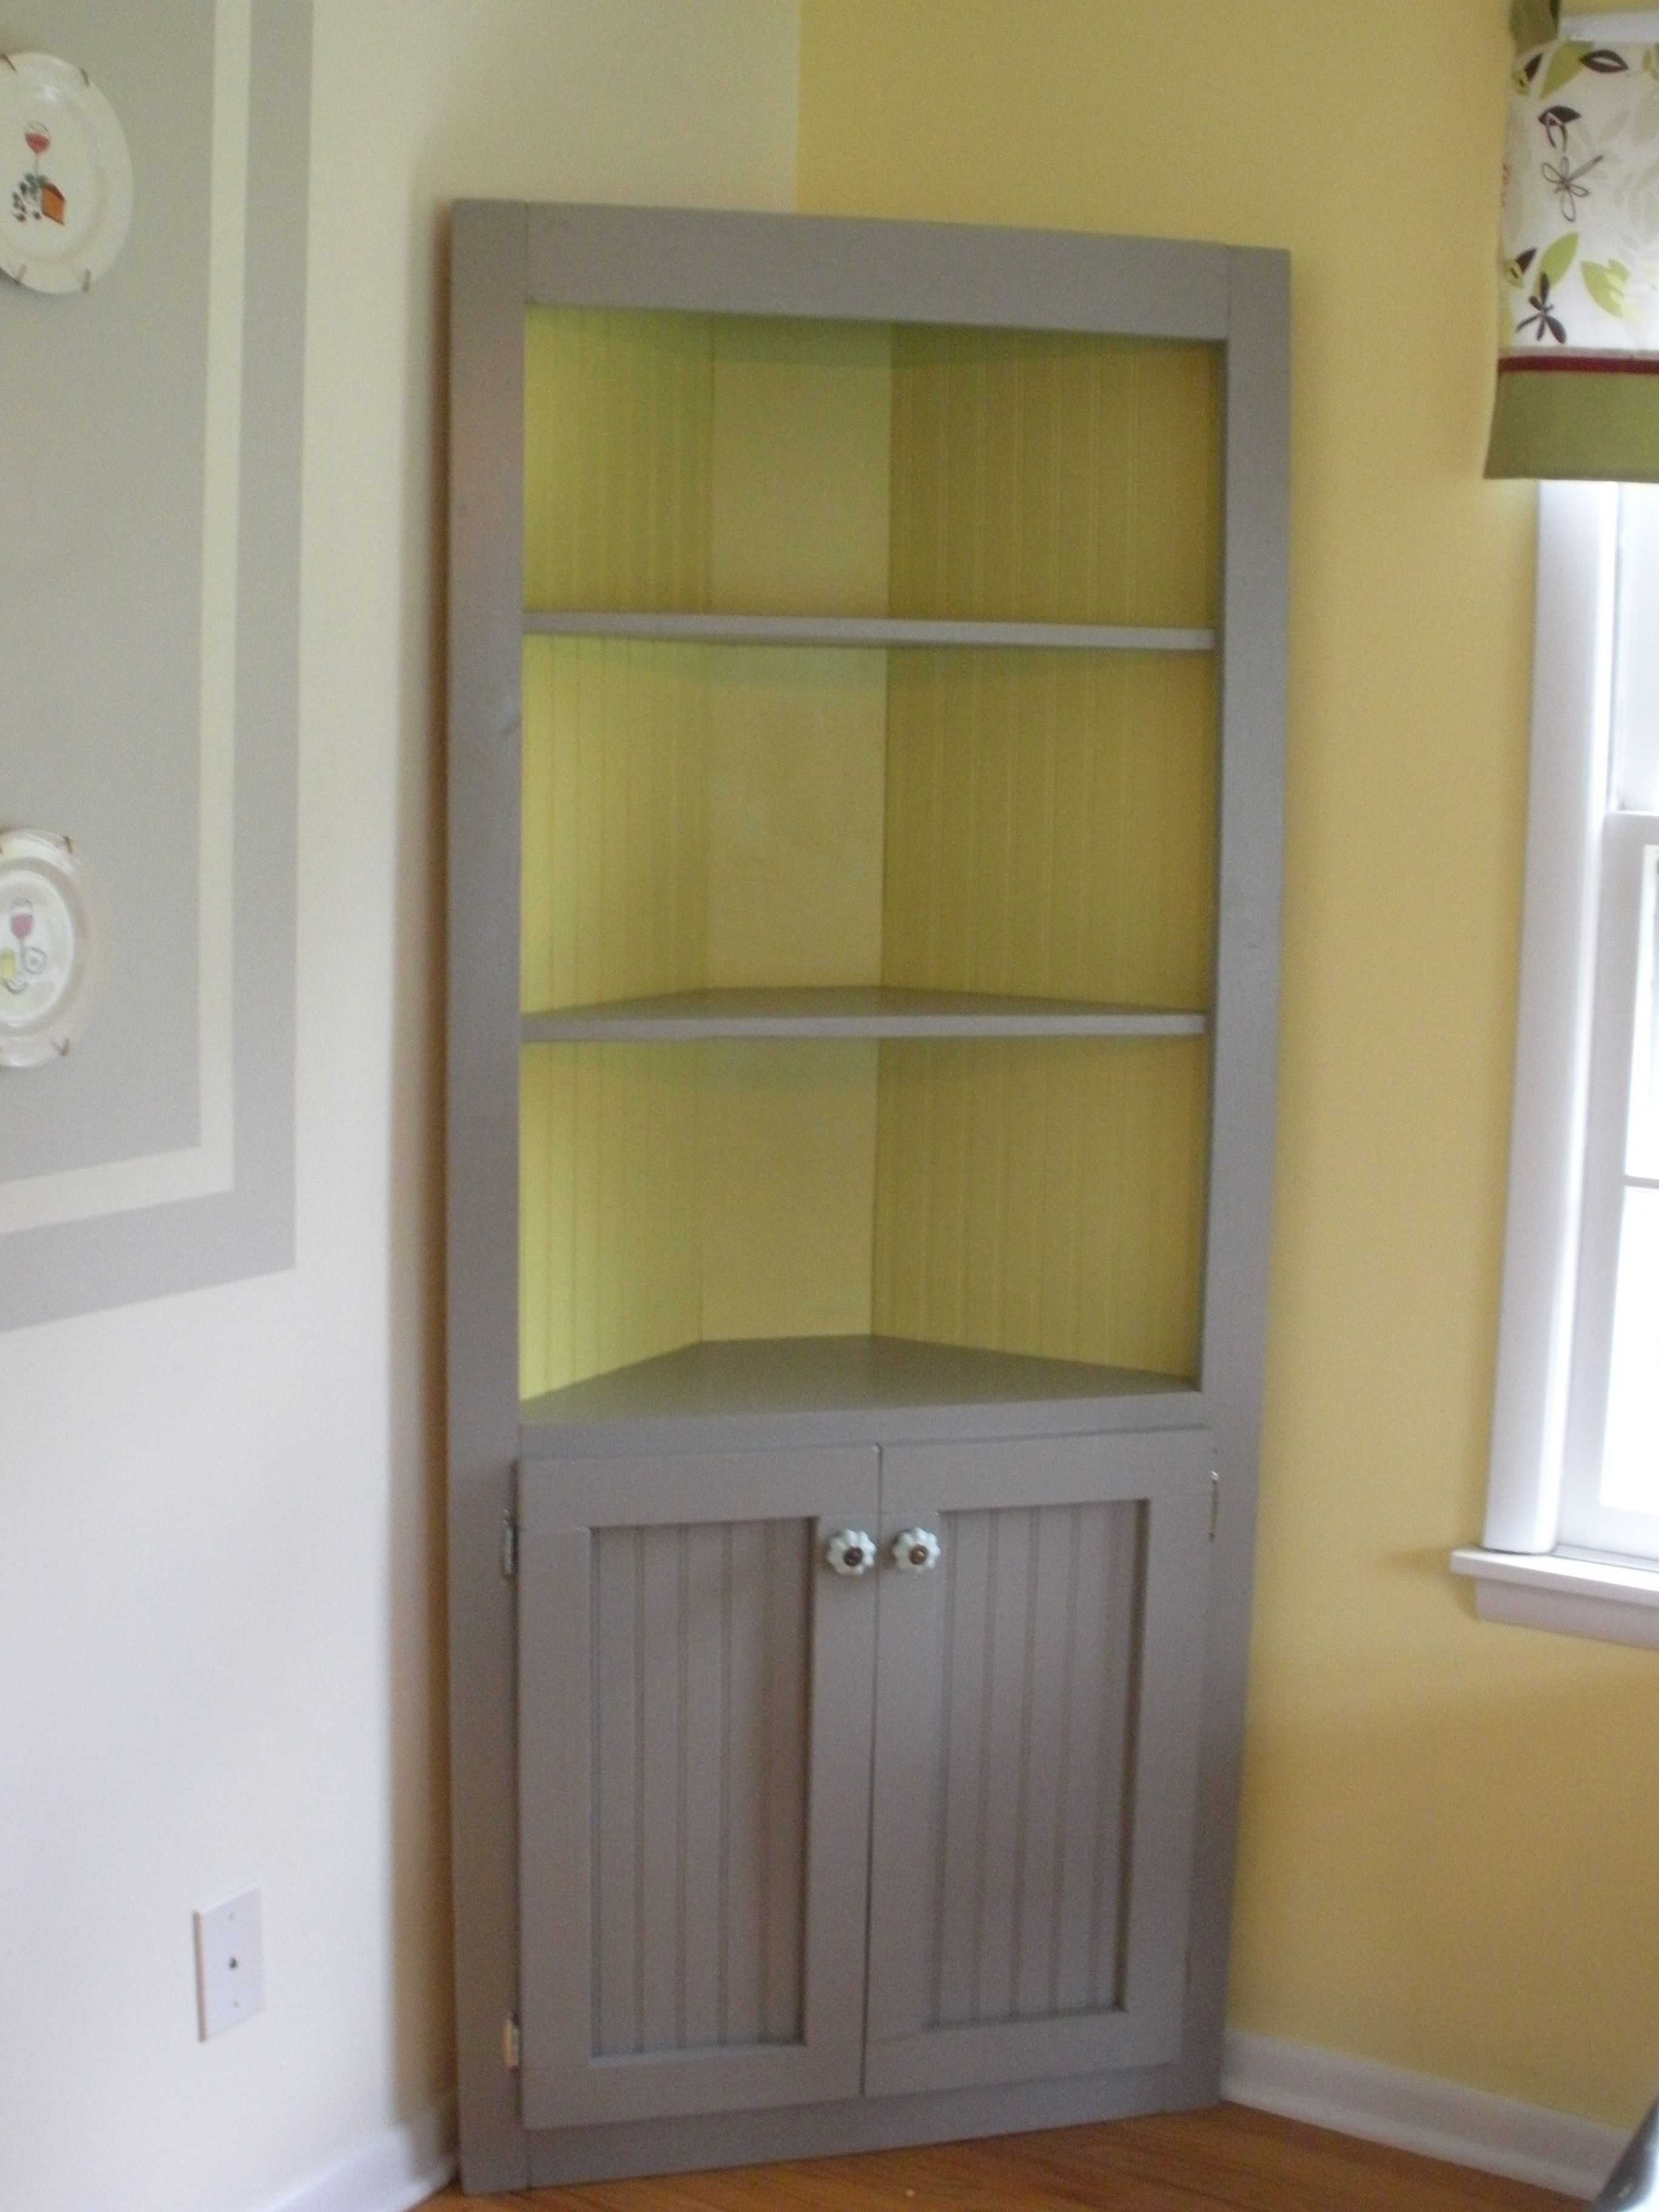 Cute corner cabinet do it yourself home projects from ana white cute corner cabinet do it yourself home projects from ana white solutioingenieria Choice Image